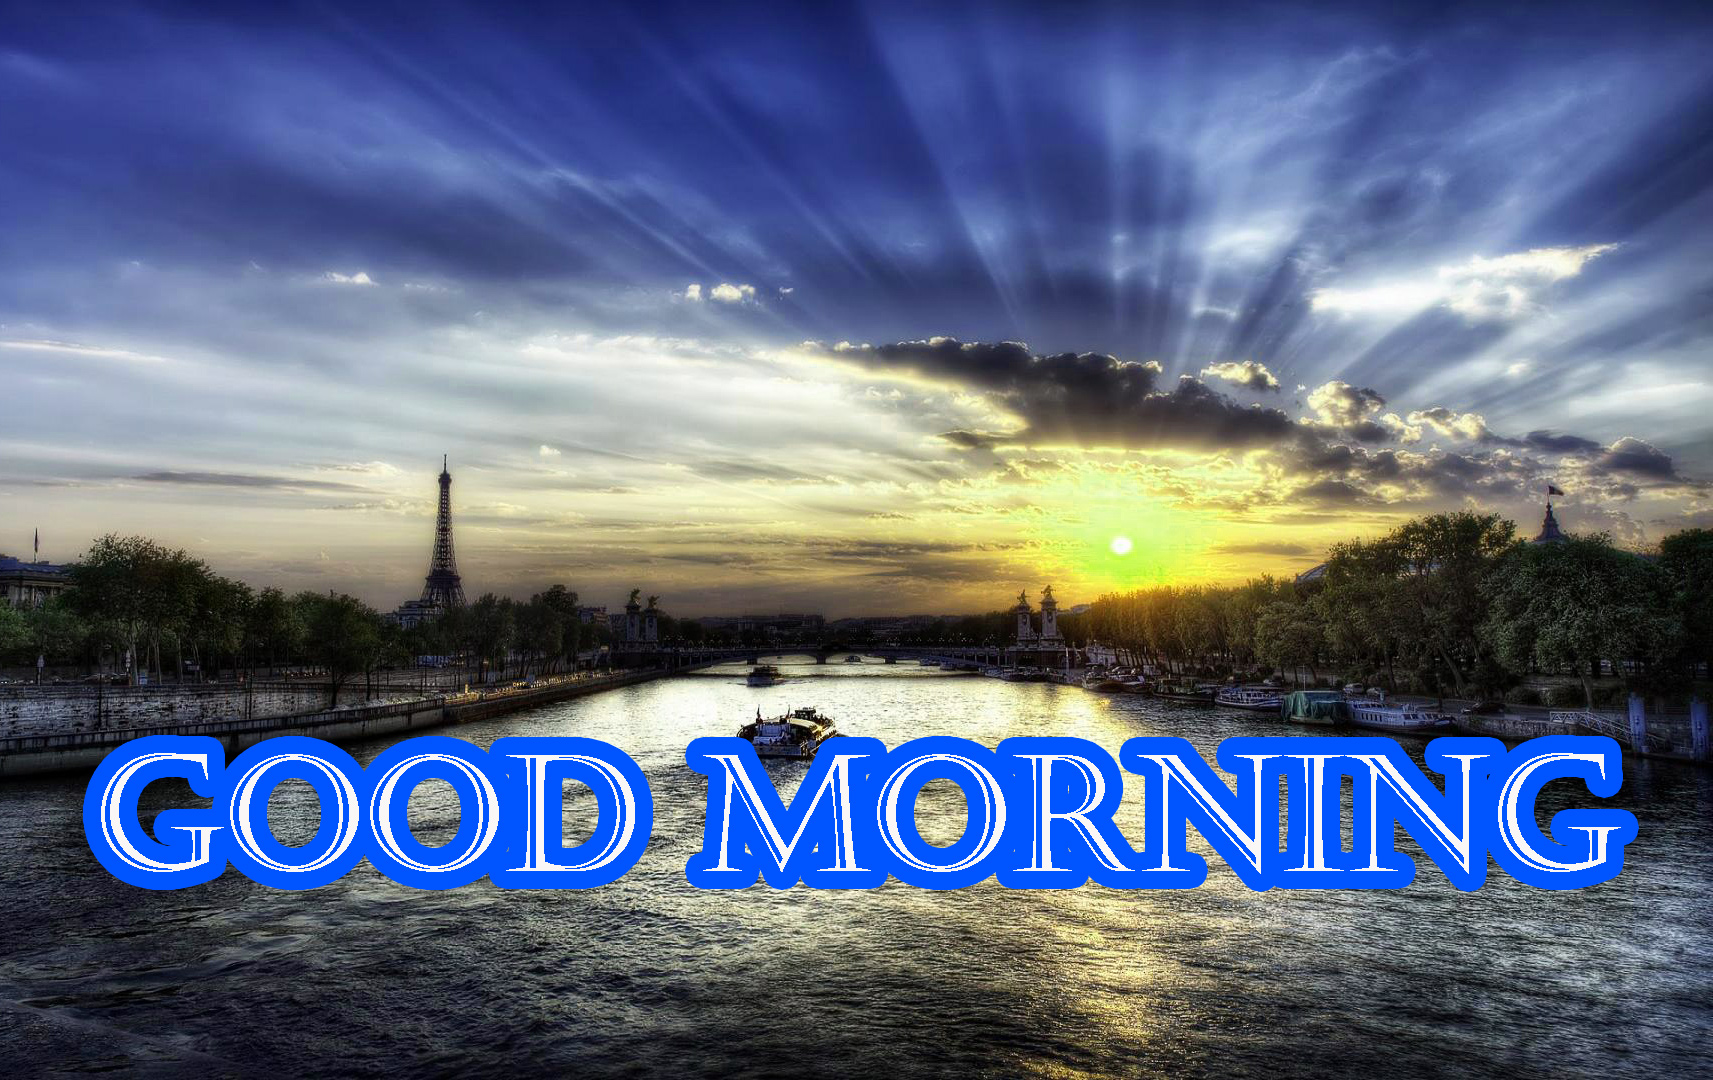 GOOD MORNING IMAGE PICTURES WALLPAPER HD DOWNLOAD